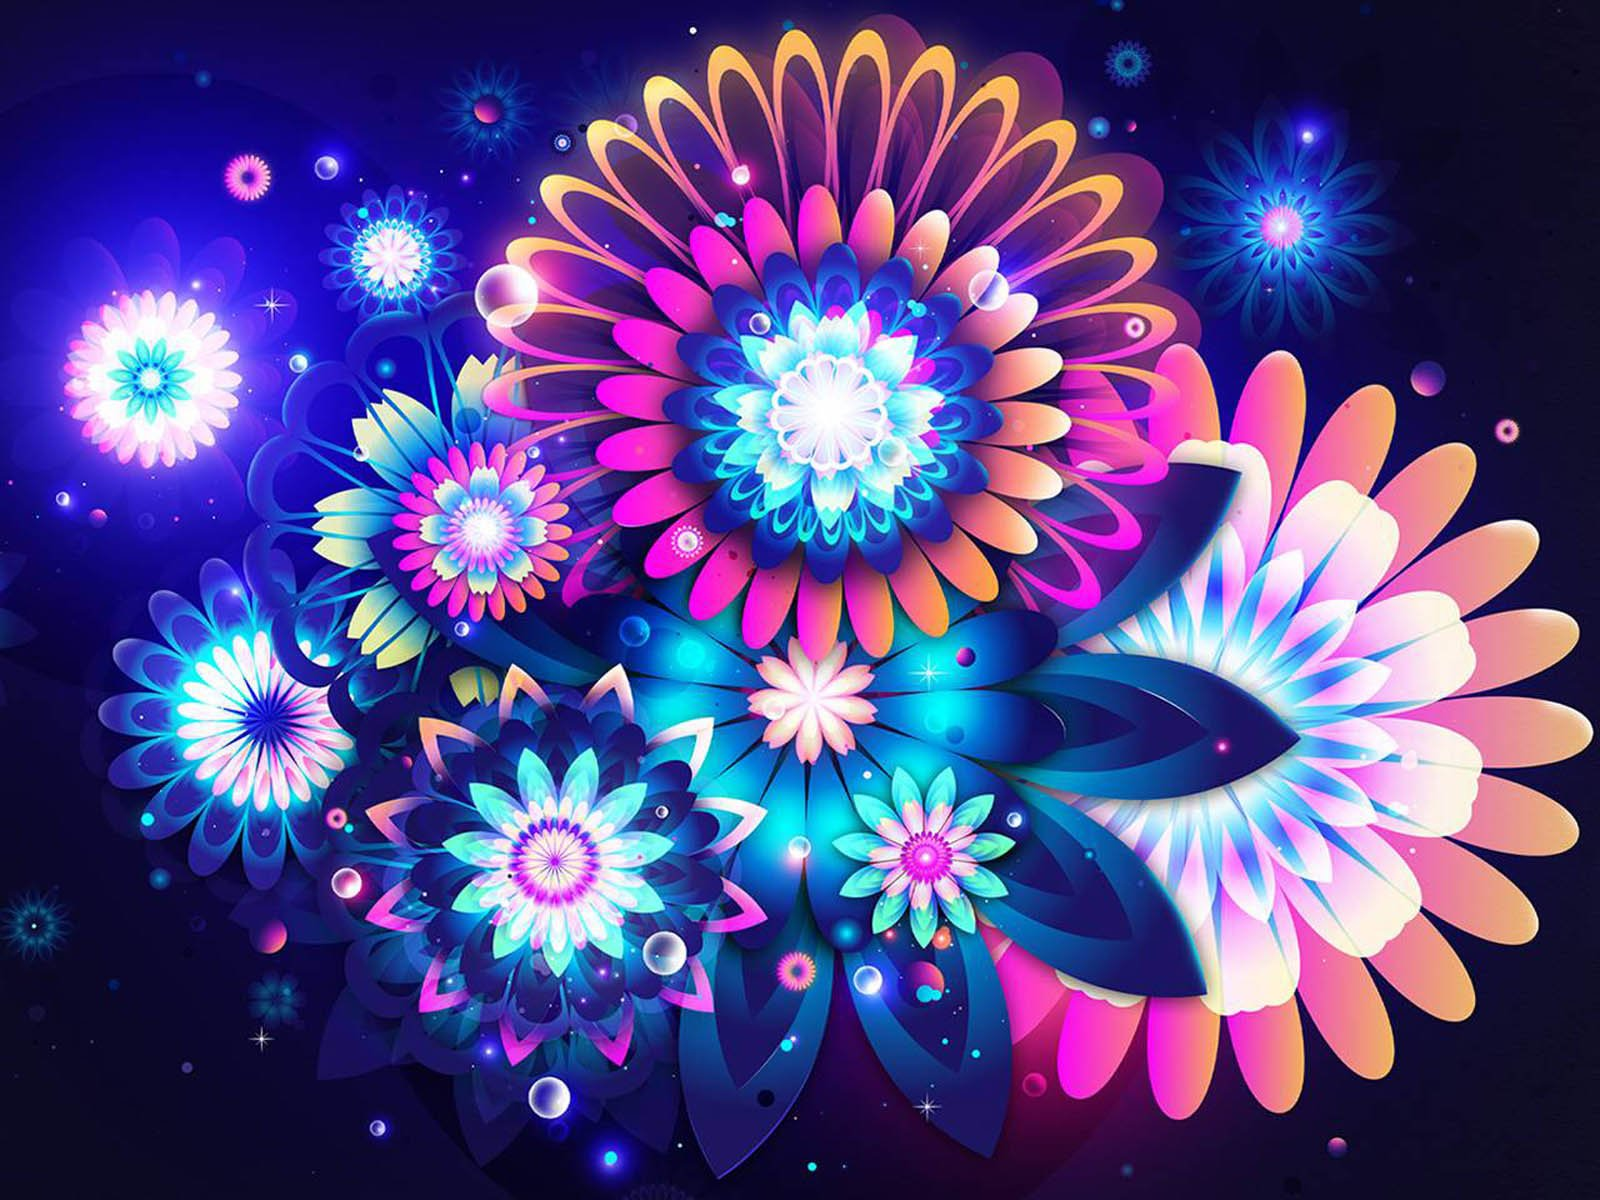 Free Abstract Wallpaper Backgrounds And Puter